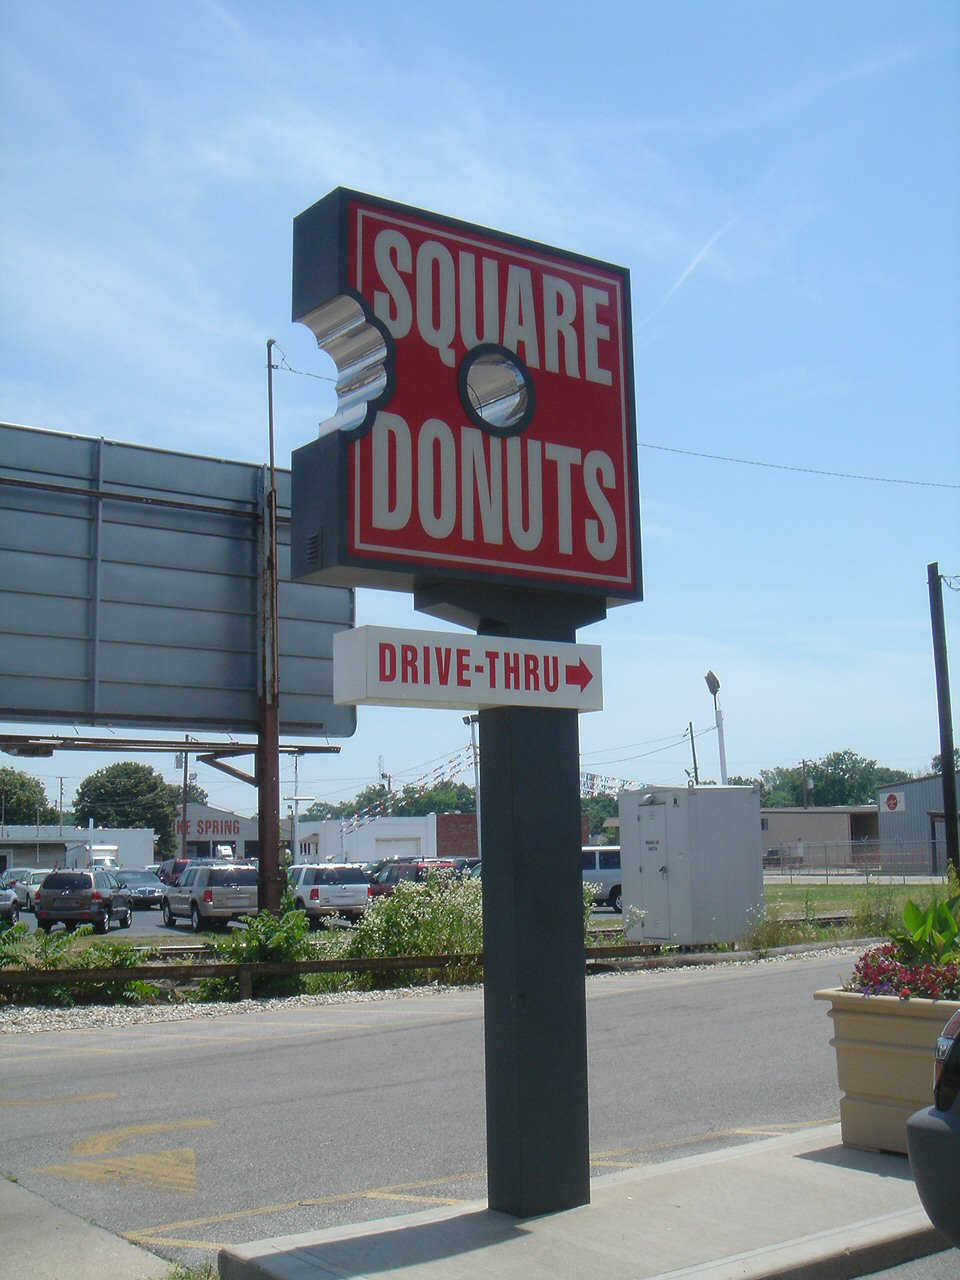 Square Donuts East